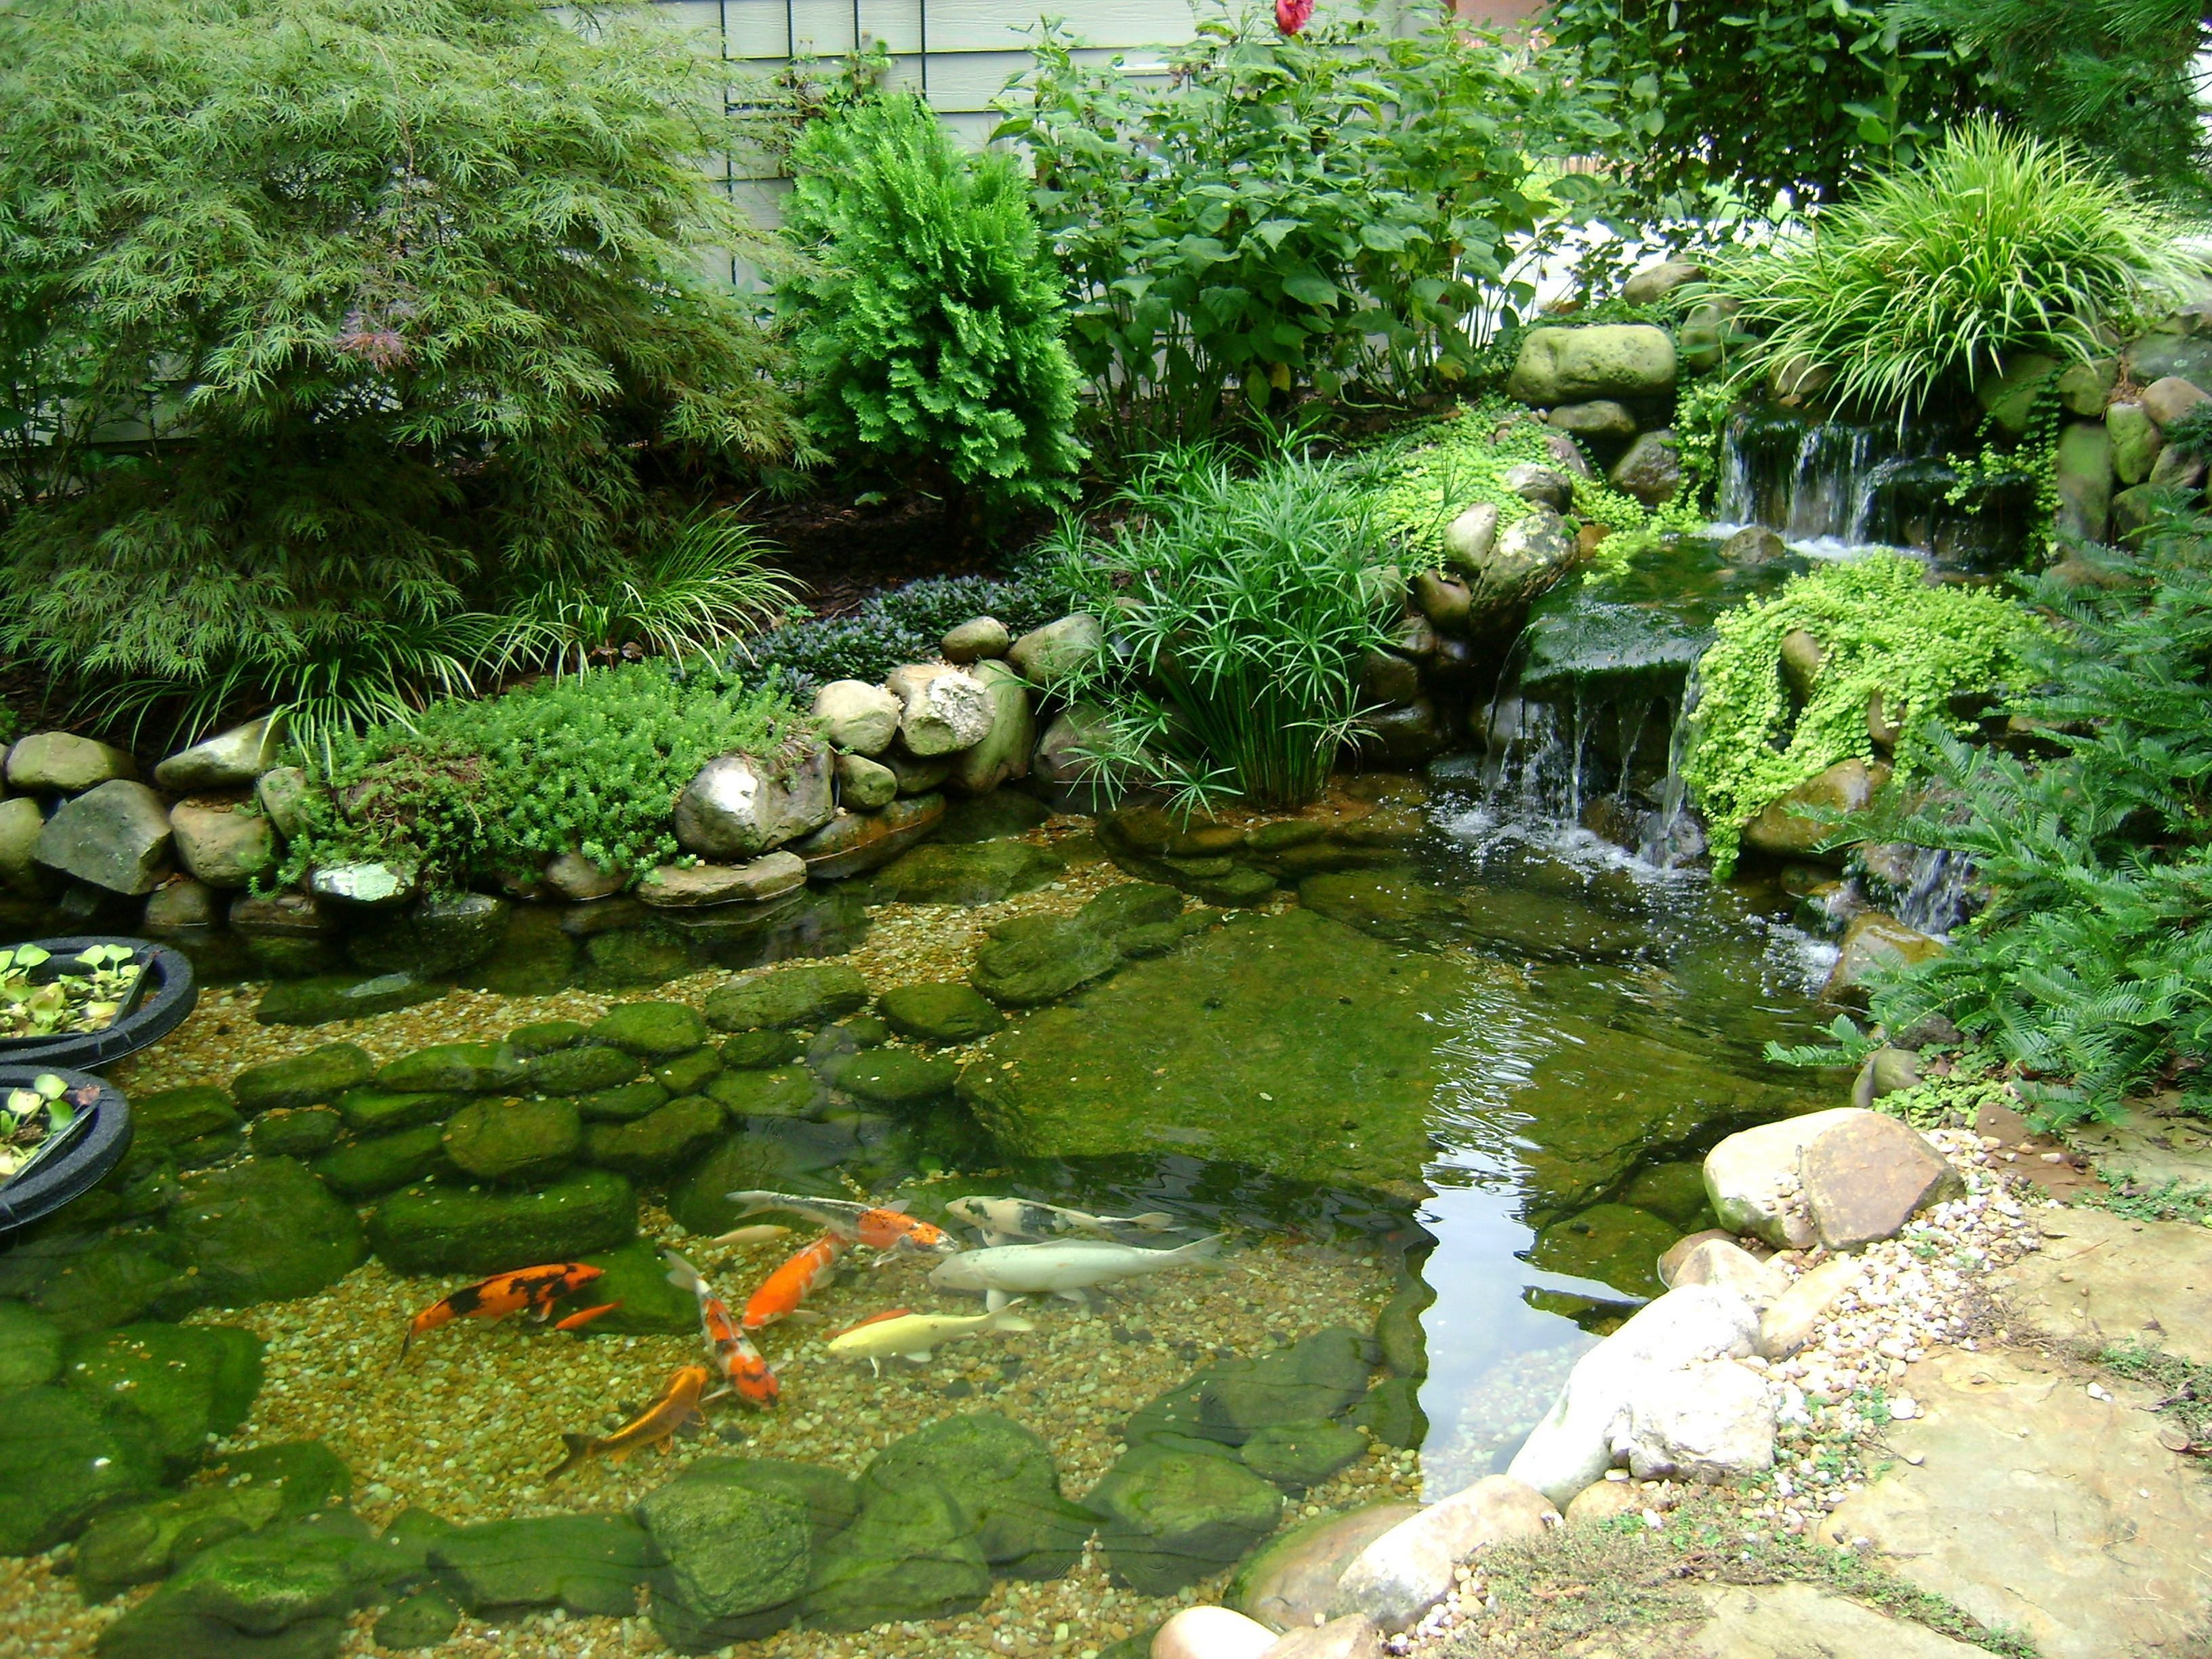 30 Awesome Home Garden Landscaping Ideas With Fish Pond Design Decor It S Koi Pond Design Fish Pond Gardens Garden Pond Design